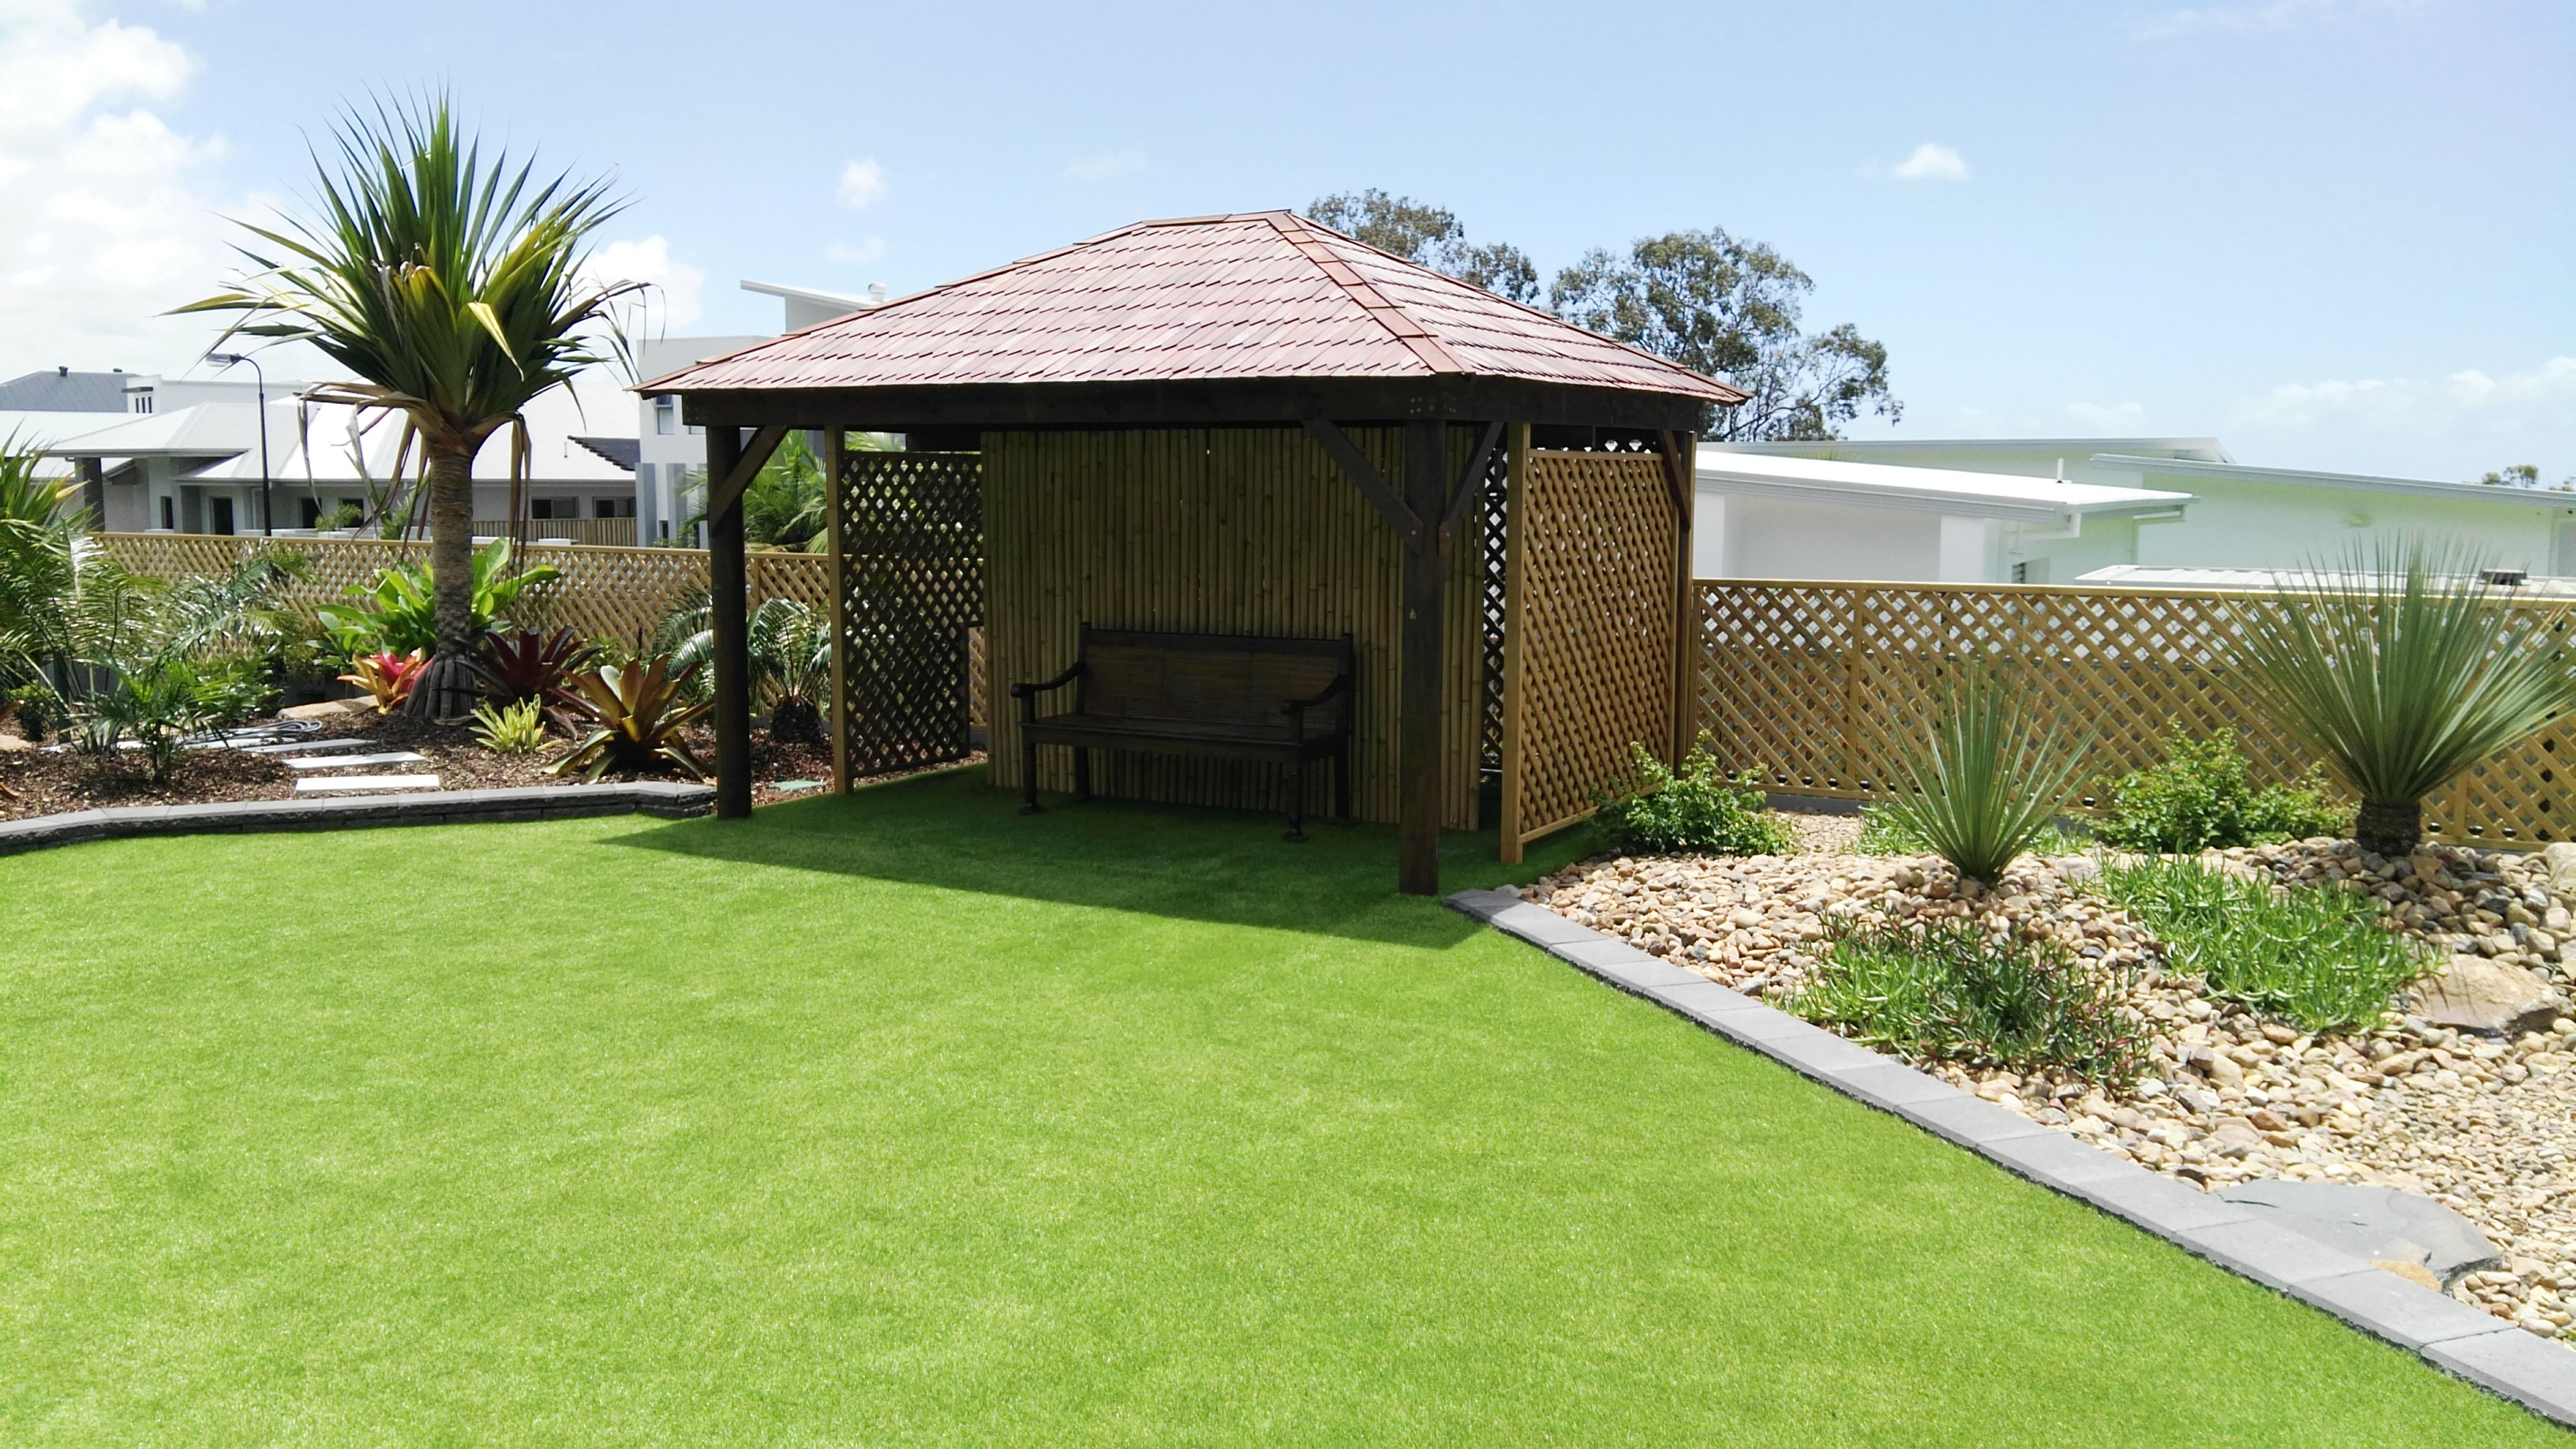 Shingles hut Brisbane Thatch Bali Huts And decks14710